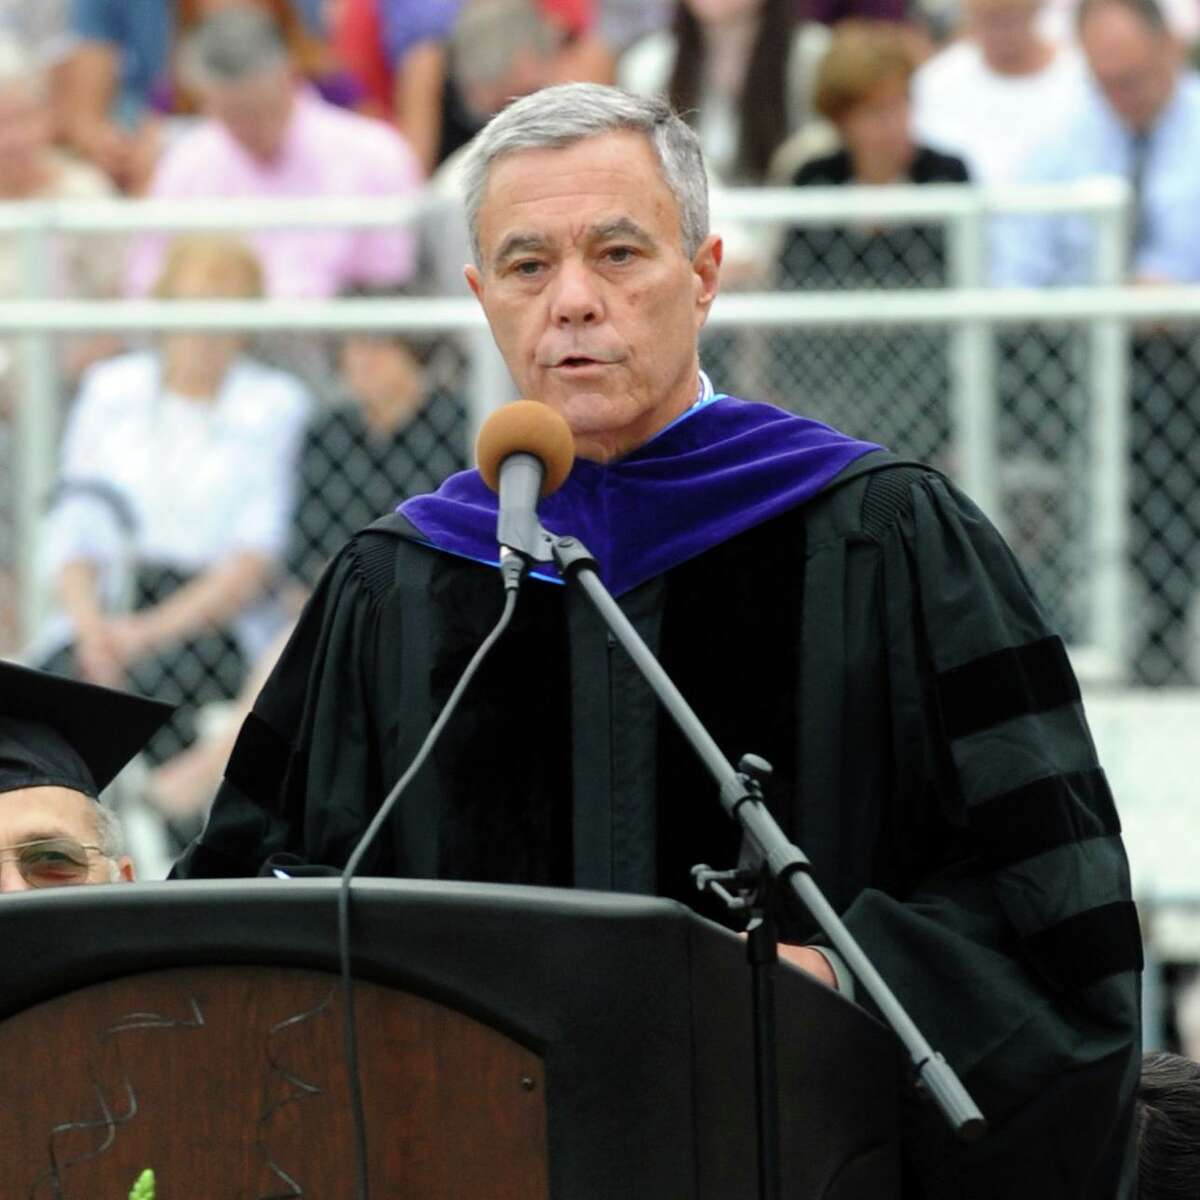 Stephen Wright, then Chairman of the Board of the Education adresses the Trumbull High Class of 2012 at the school's graduation on June 19, 2012.